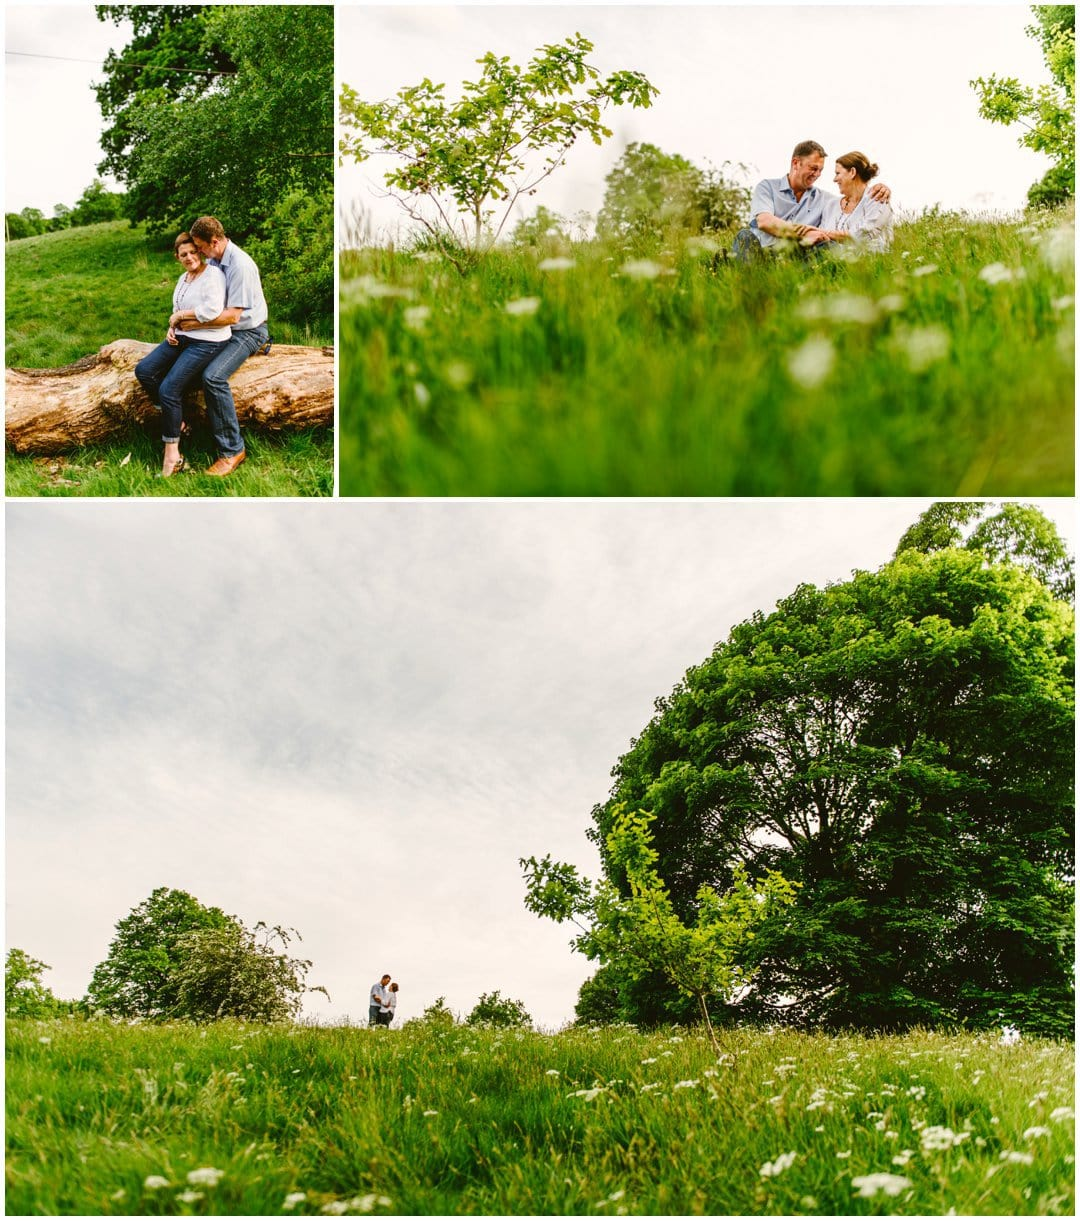 Sarah and Jason's Summertime engagement shoot in Sutton Park, Sutton Coldfield, by West Midlands Wedding Photographer Lisa Carpenter Photography ahead of their summer wedding at Nuthurst Grange